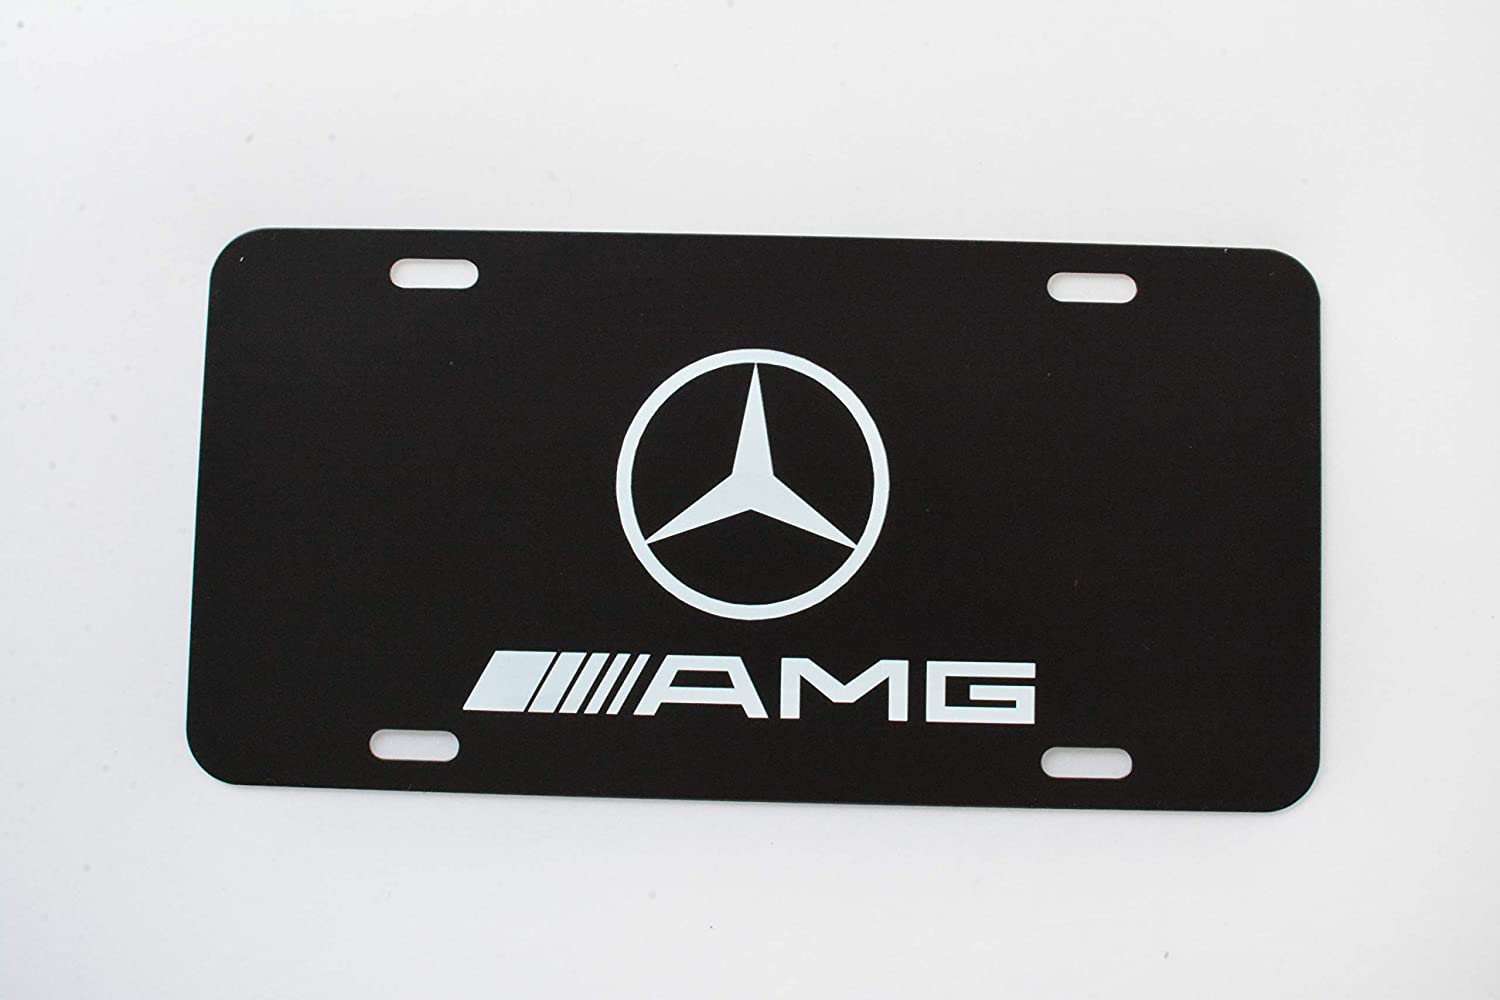 Mercedes Benz Logo Black Stainless Steel Front License Plate Cover,with Screw Caps Cover Set Suit,Applicable to US Standard car License Frame. Mercedes Benz